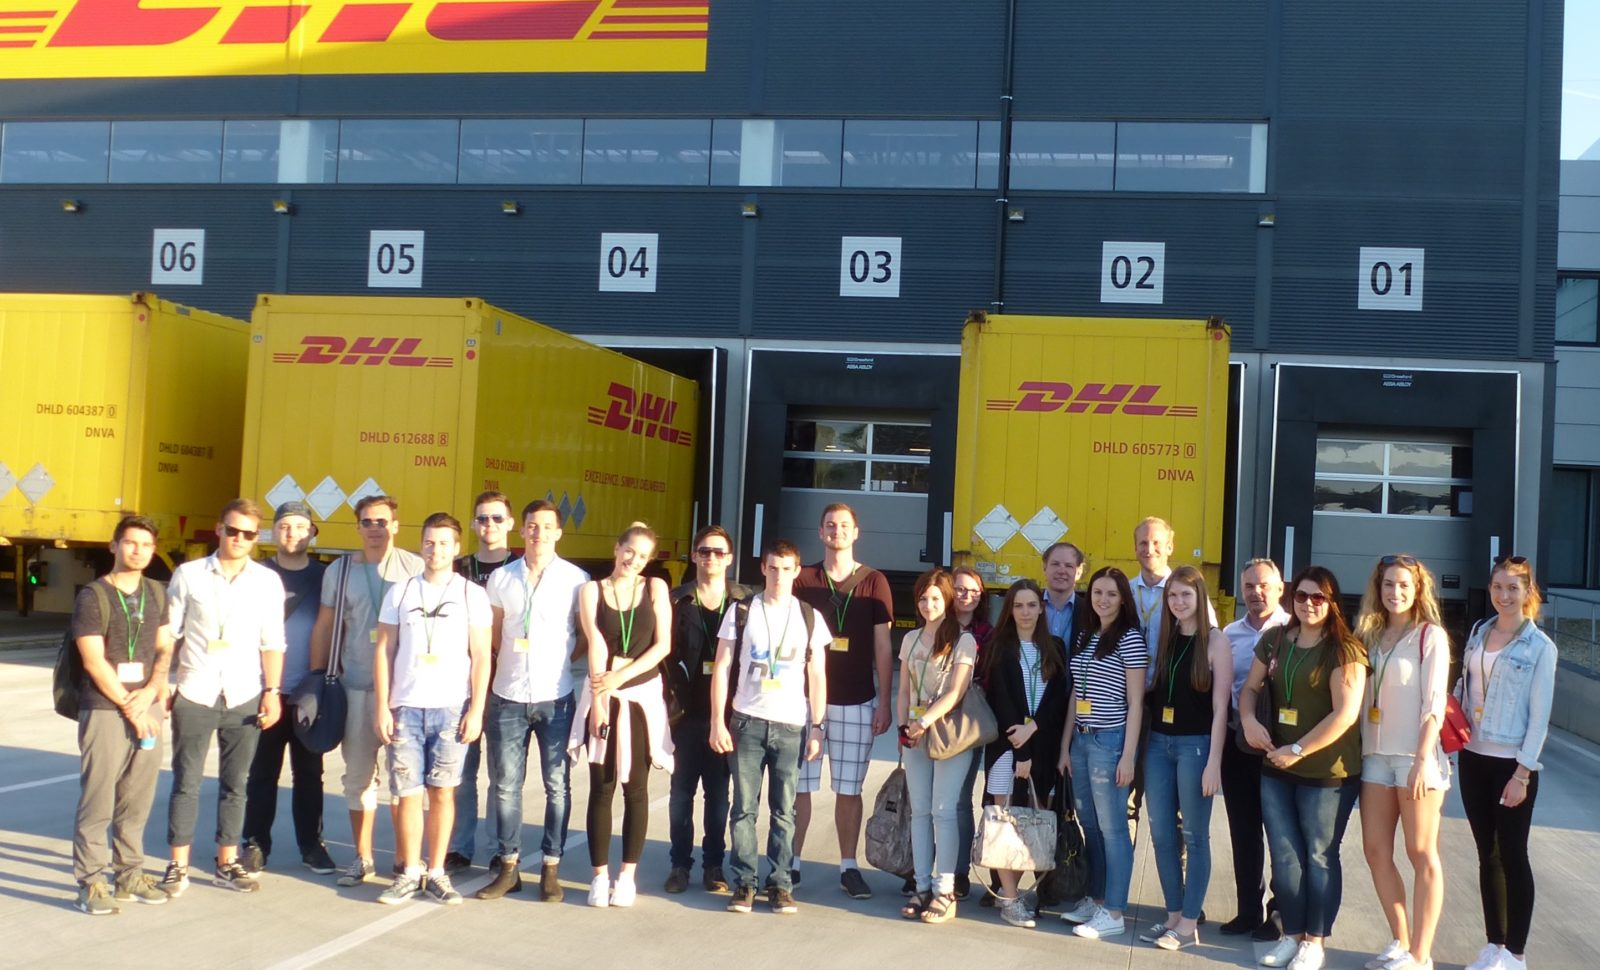 dhl paket f rdert mit studenten praxisaustausch logistik express news. Black Bedroom Furniture Sets. Home Design Ideas